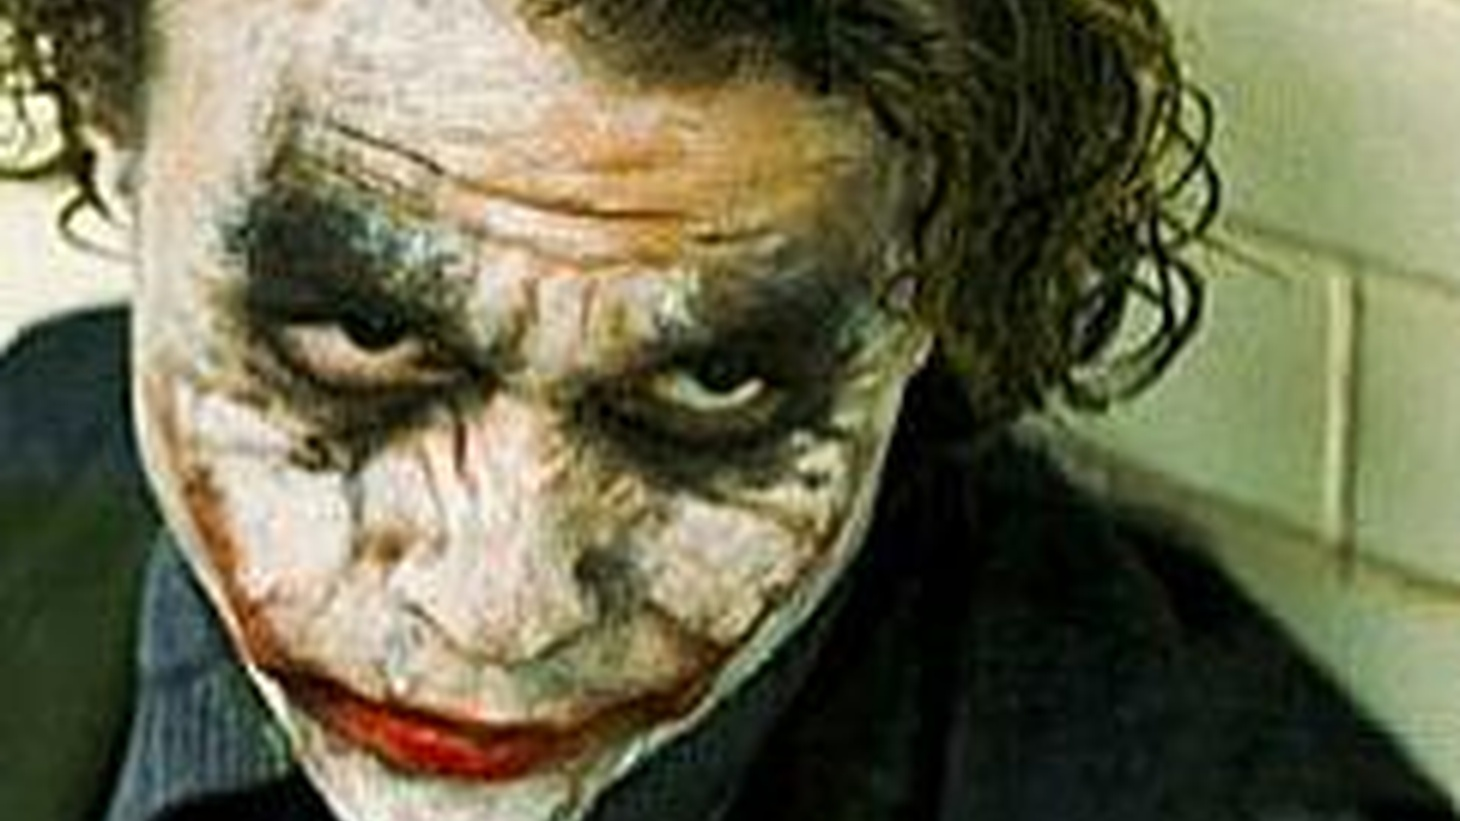 Joe Morgenstern, film critic for the Wall Street Journal, reviews The Dark Knight.